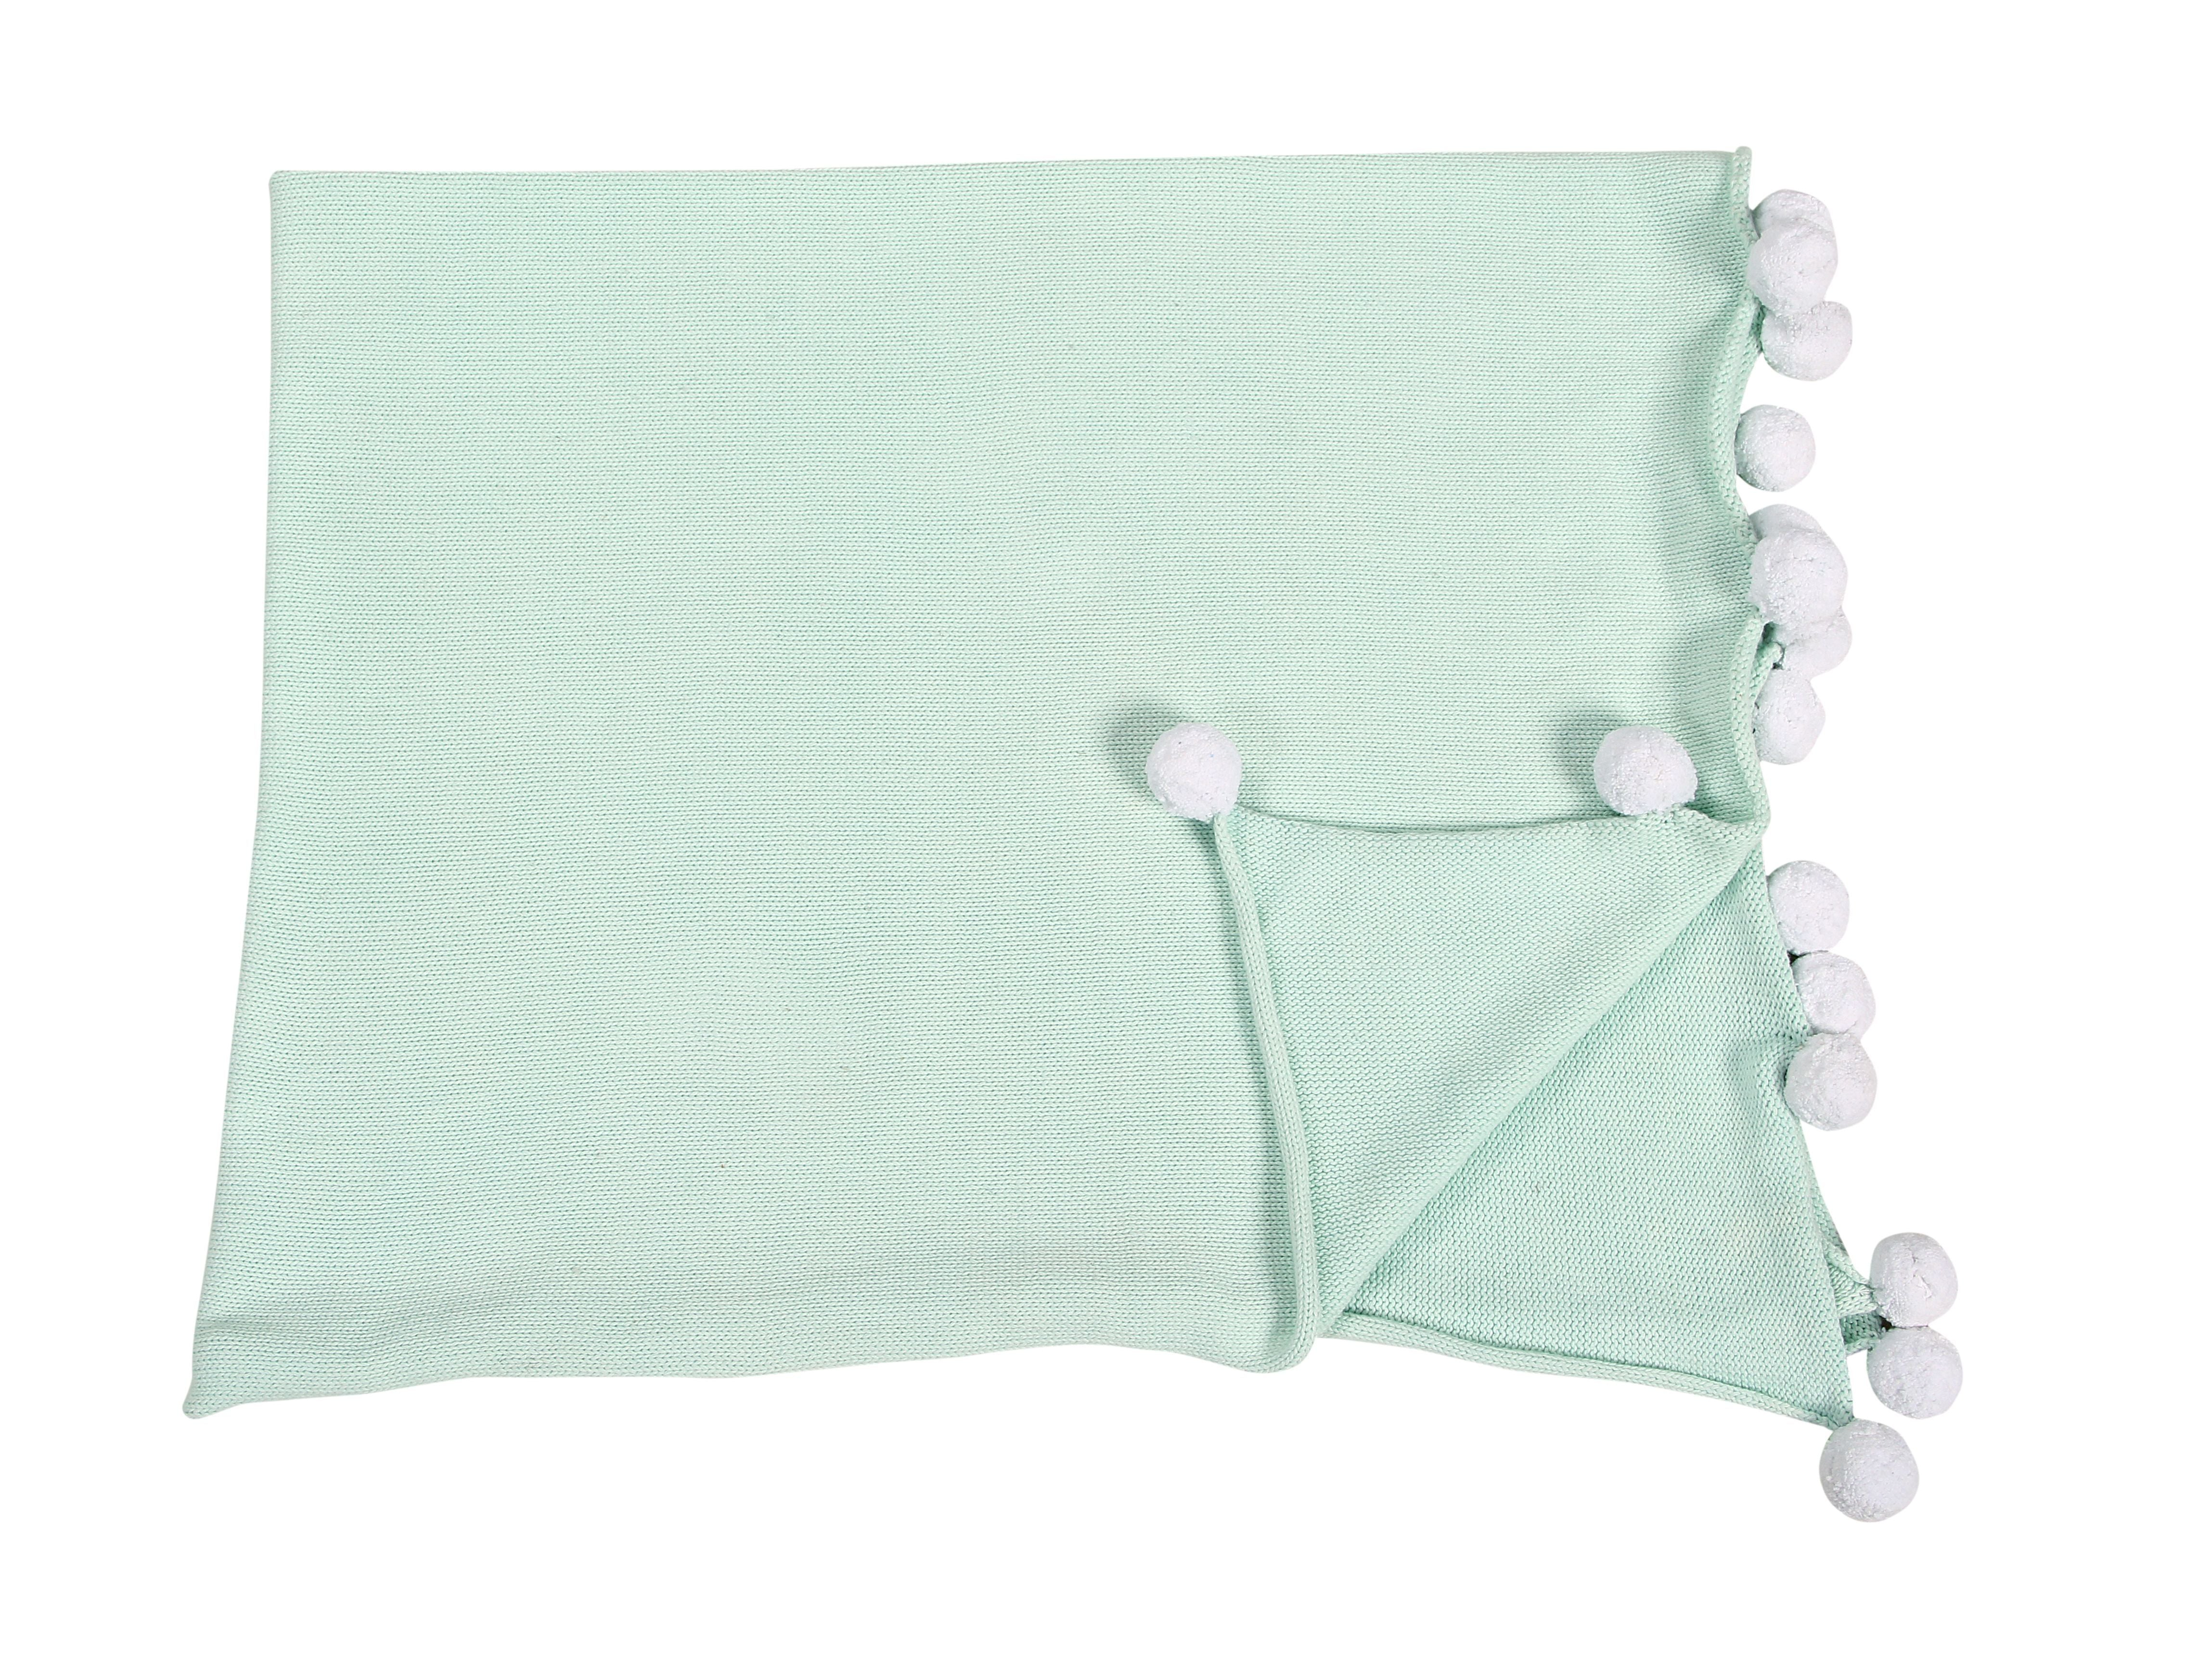 Bubbly Baby Blanket in Mint design by Lorena Canals